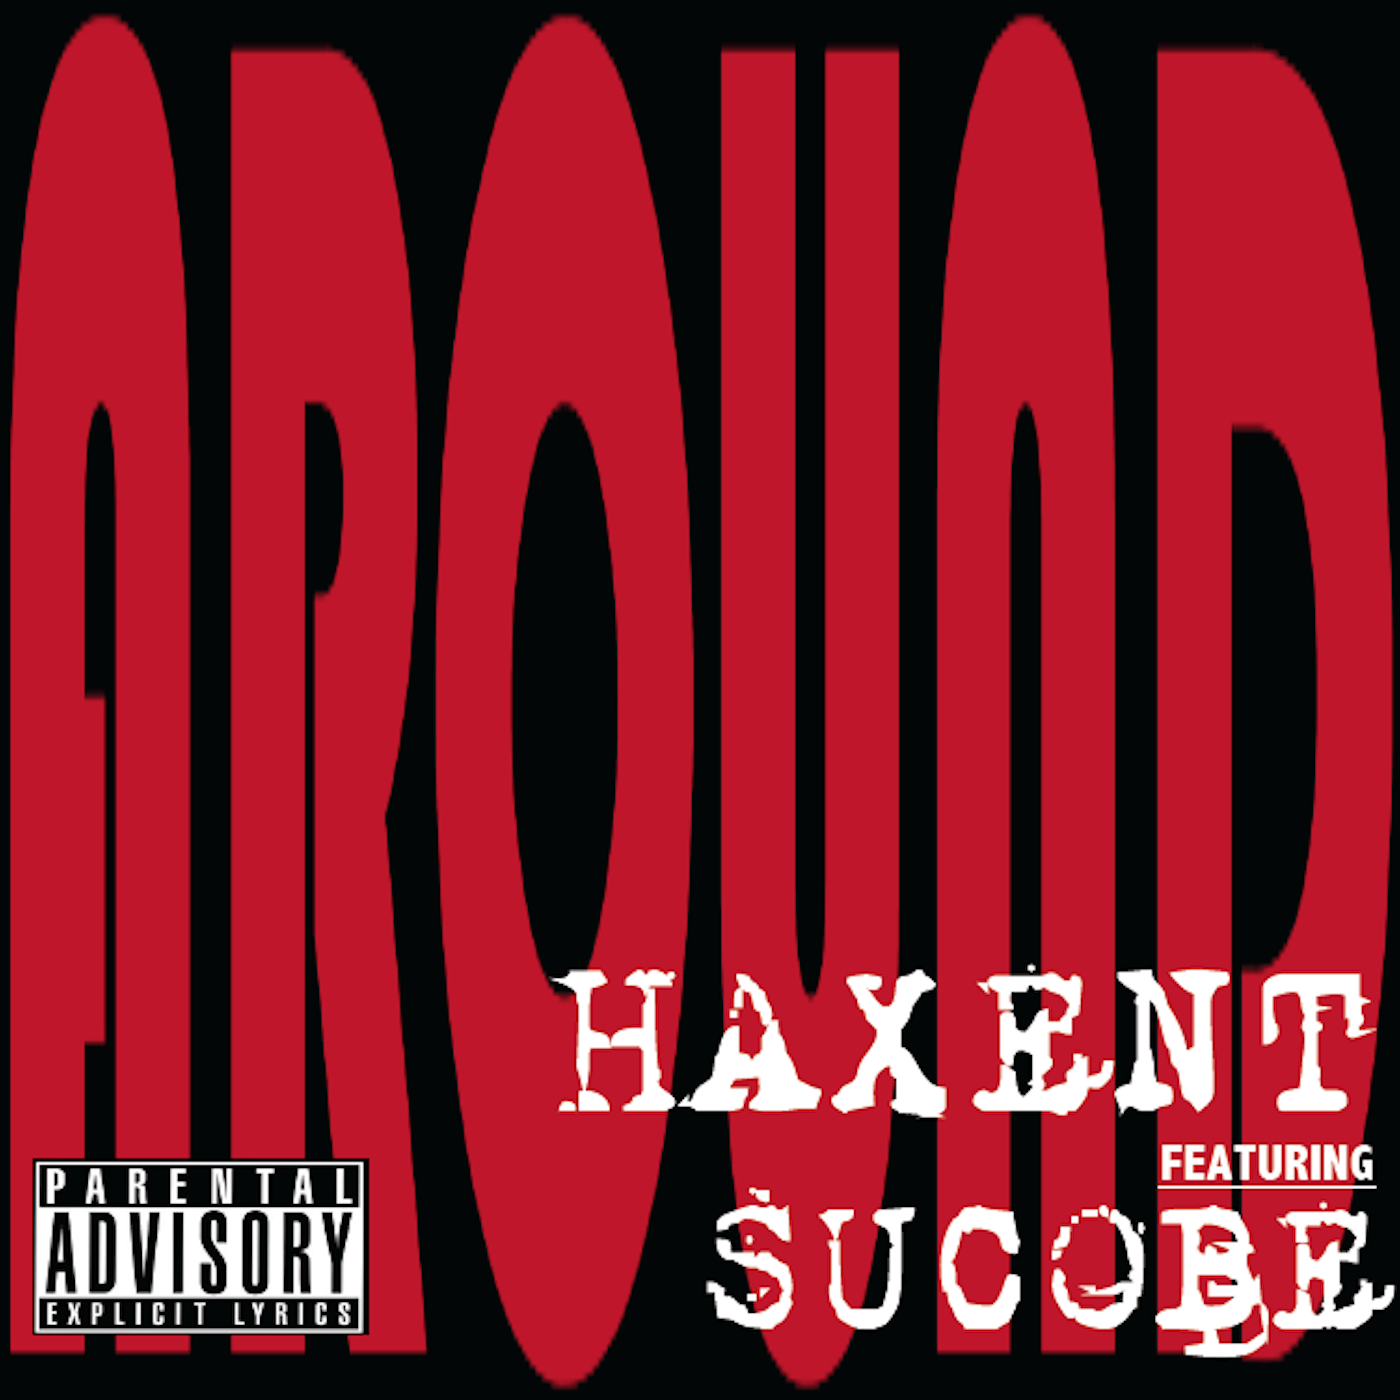 AROUND - Haxent feature Sucobe